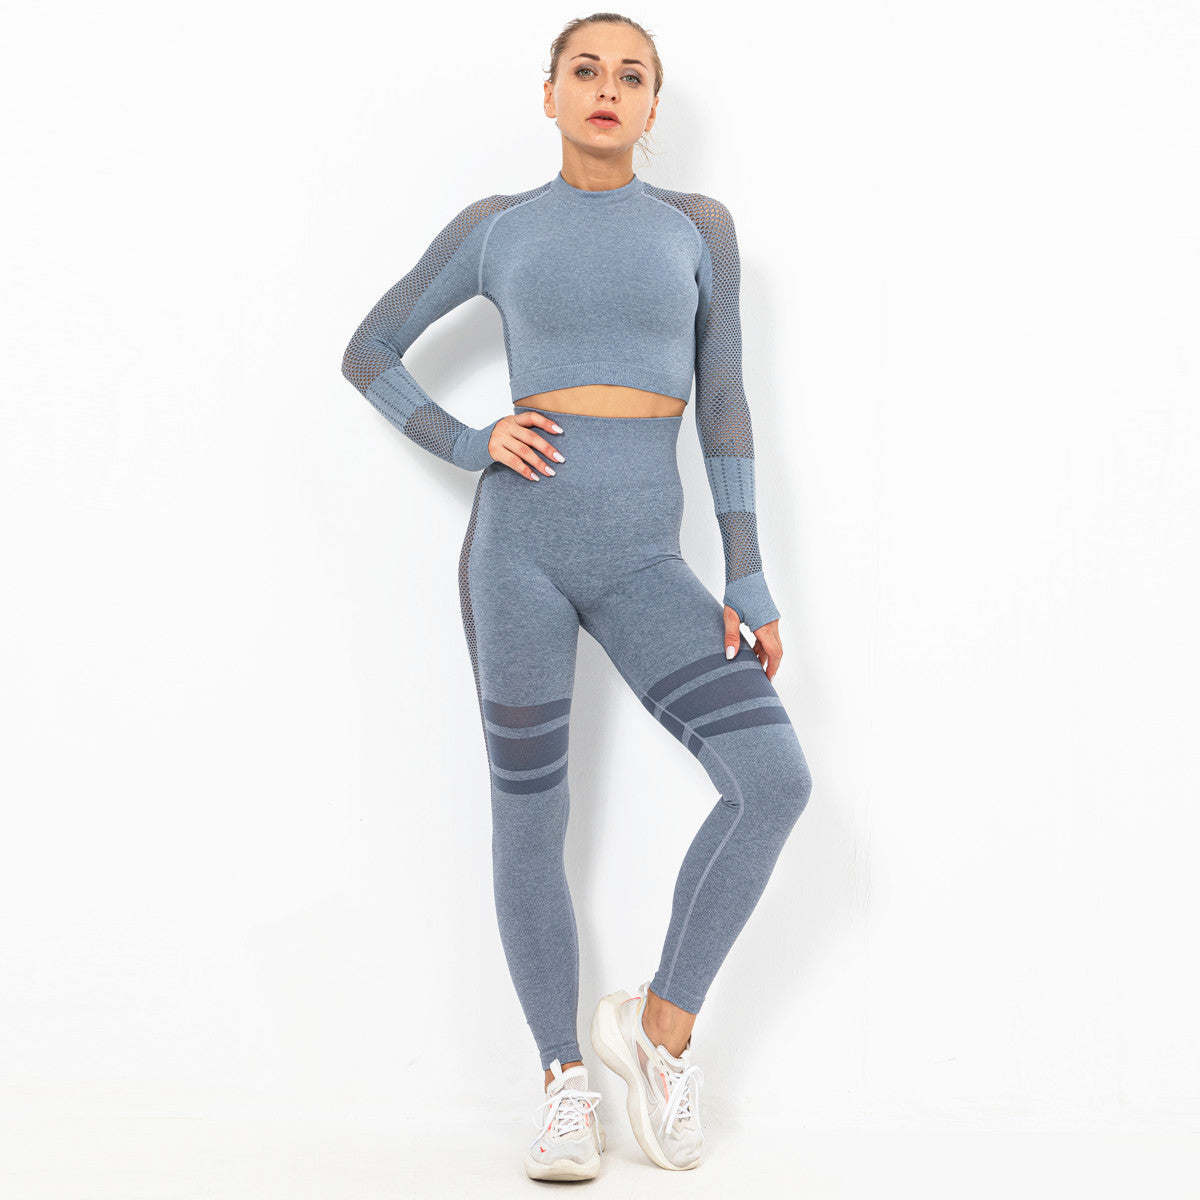 Women Yoga Set Workout Sportswear Gym Clothing Fitness Long Sleeve High Waist Leggings Sports Suits YS-001